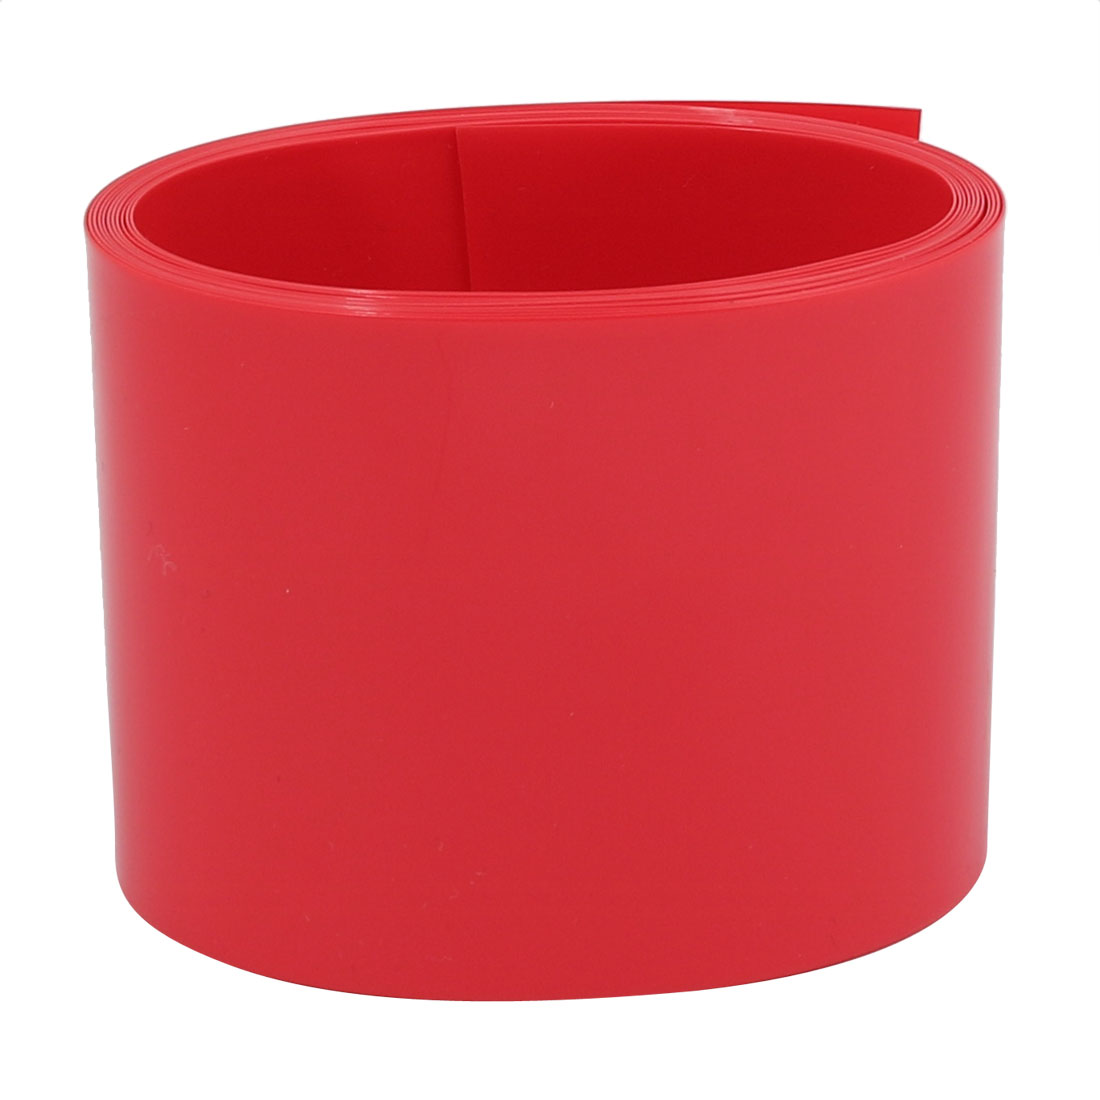 55mm Flat Width 2M Long PVC Heat Shrinkable Tube Red for Capacitive Battery Pack